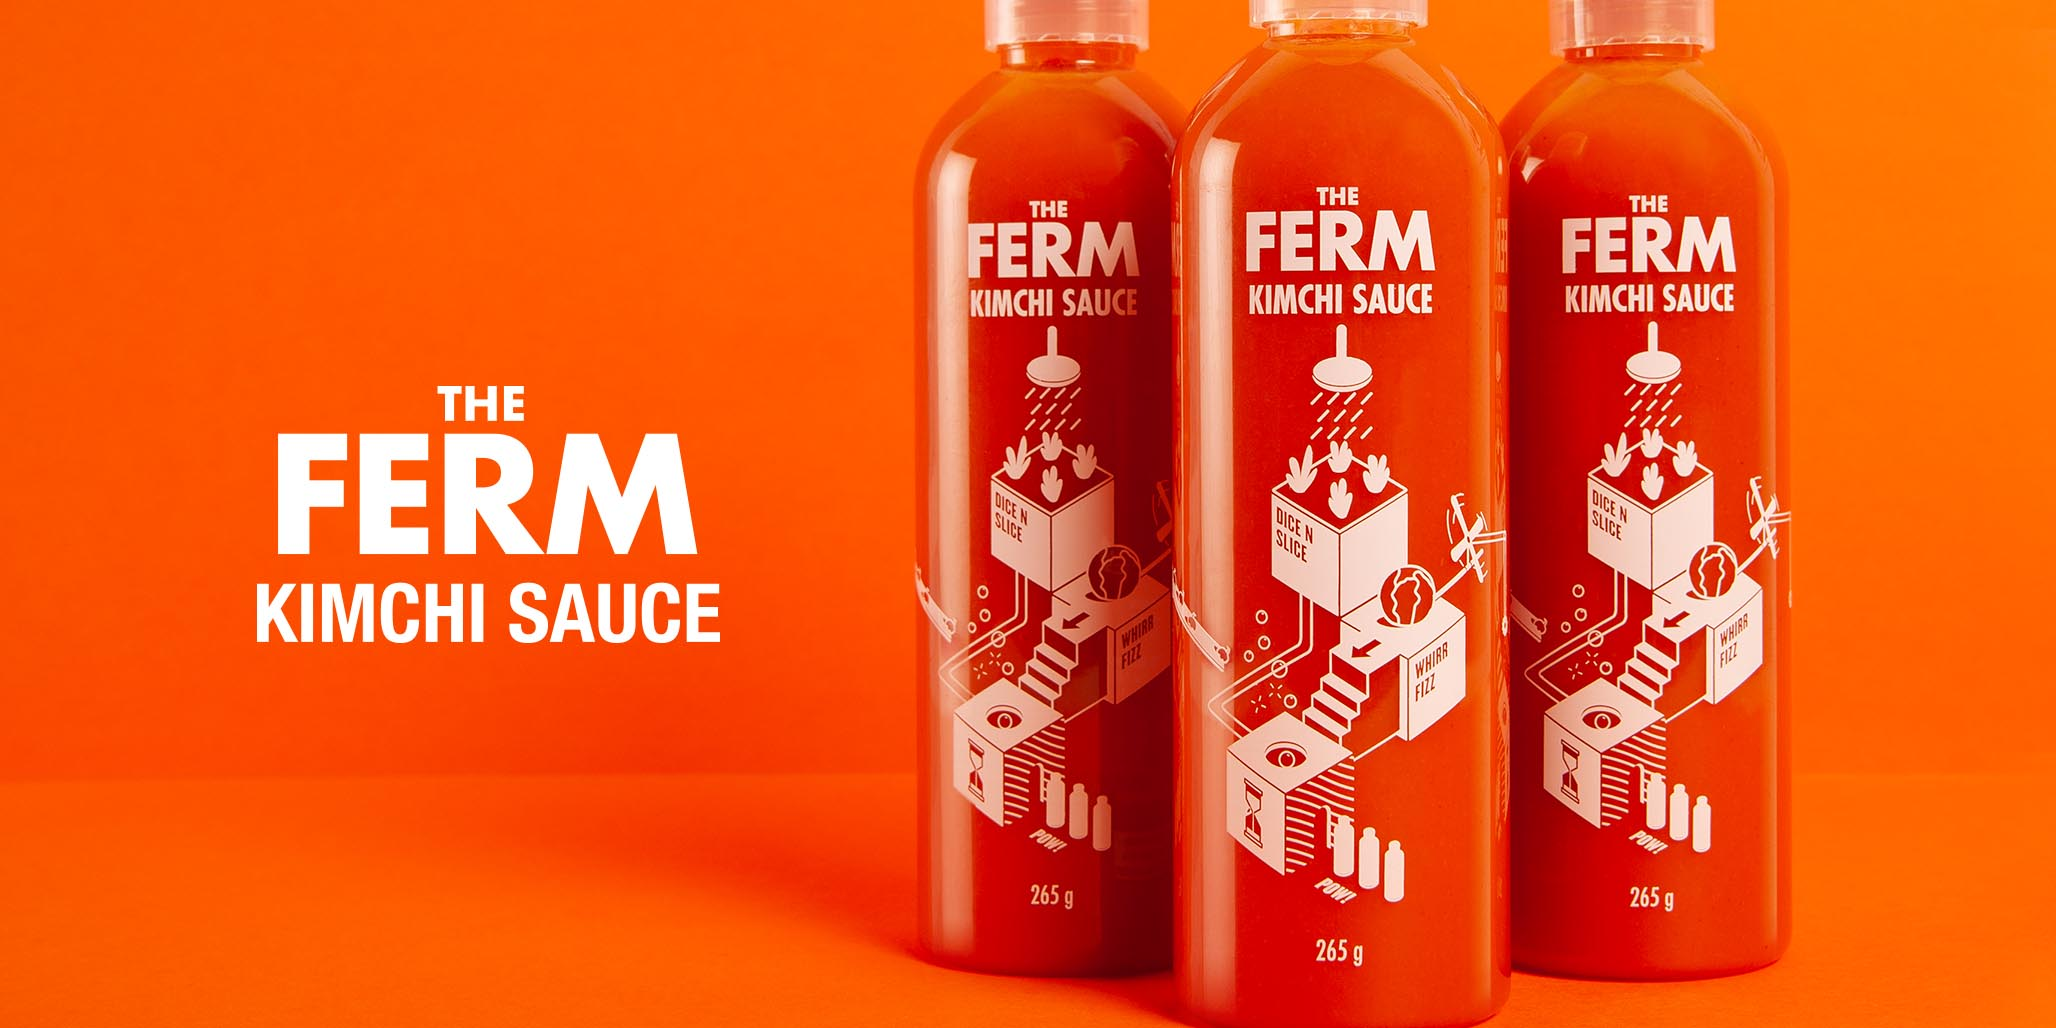 Brand Positioning, Brand Naming, Branding & Packaging Design project for FMCG food product manufacturer The Ferm, Sydney, Australia, image F